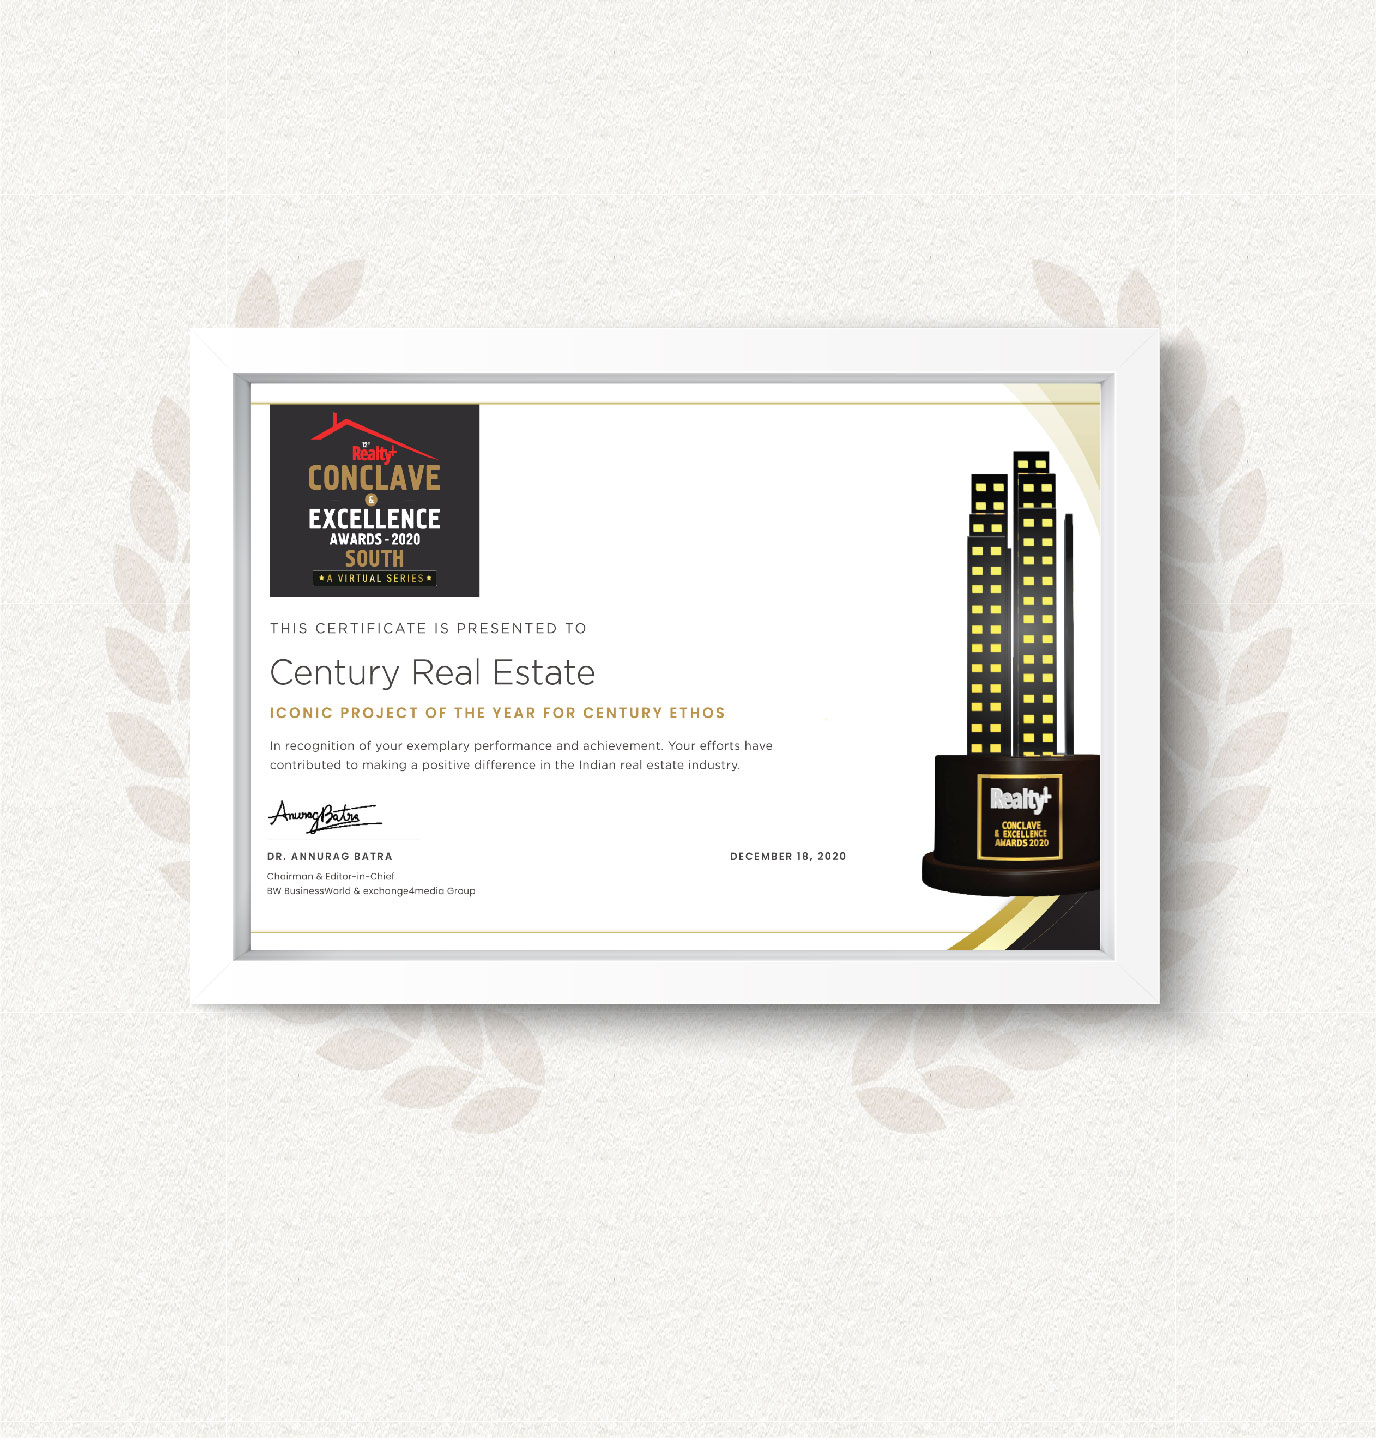 CENTURY ETHOS WINS ICONIC PROJECT OF THE YEAR - 2020